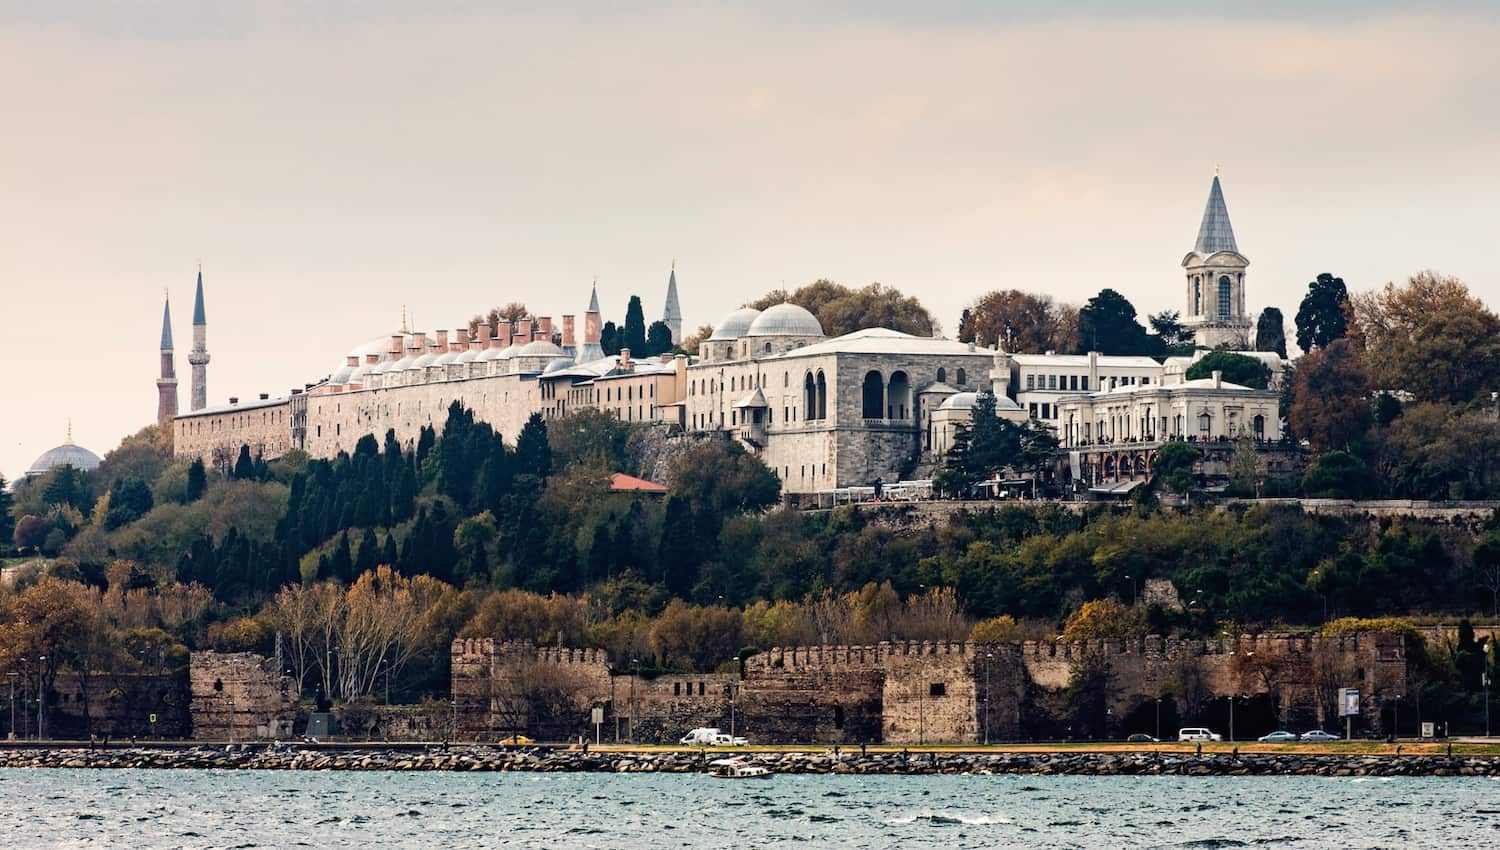 Topkapi Palace was the seat of the Muslim Caliphate for centuries, and was given it's authority from principled reading of the primary religious texts.